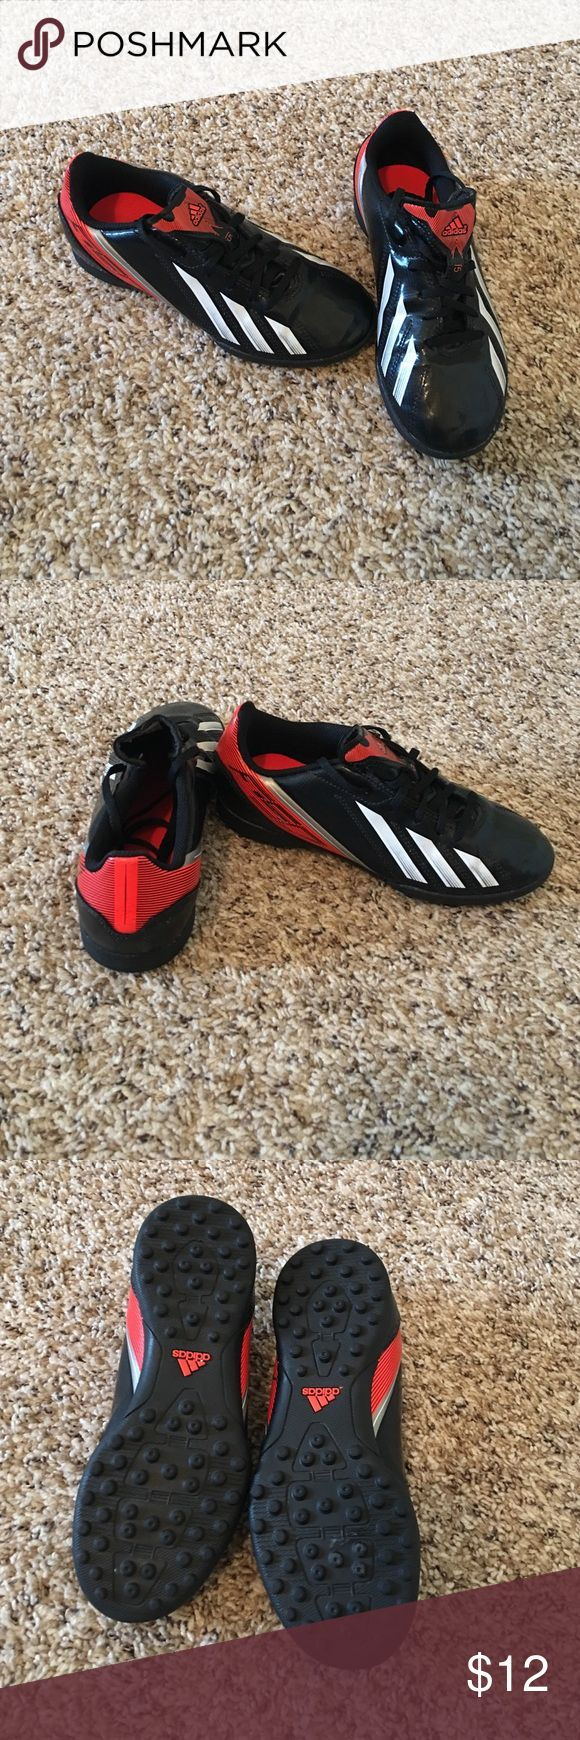 Youth Adidas indoor/turf soccer shoes. Size 2.5 Boys youth Adidas indoor/turf soccer shoes. Size 2.5 excellent condition. Adidas Shoes Sneakers